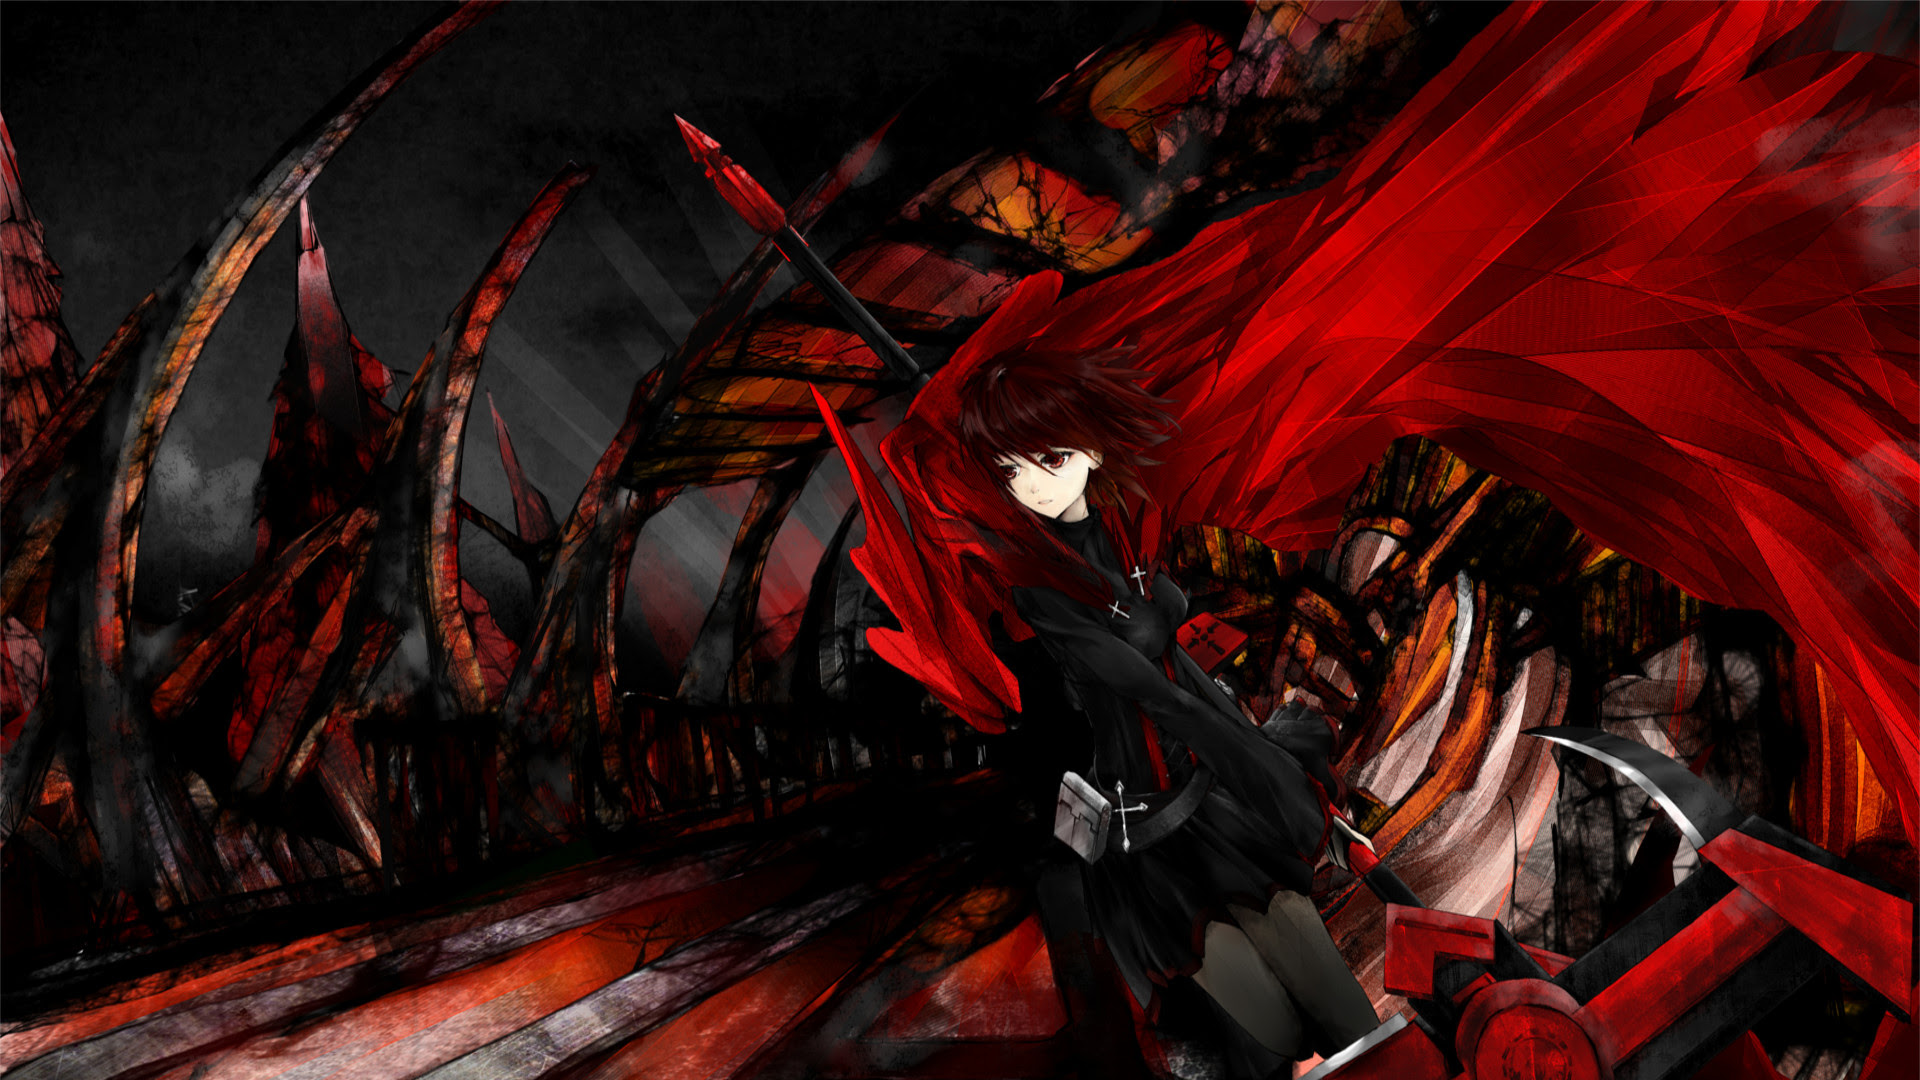 Red And Black Anime Wallpaper 72 Images